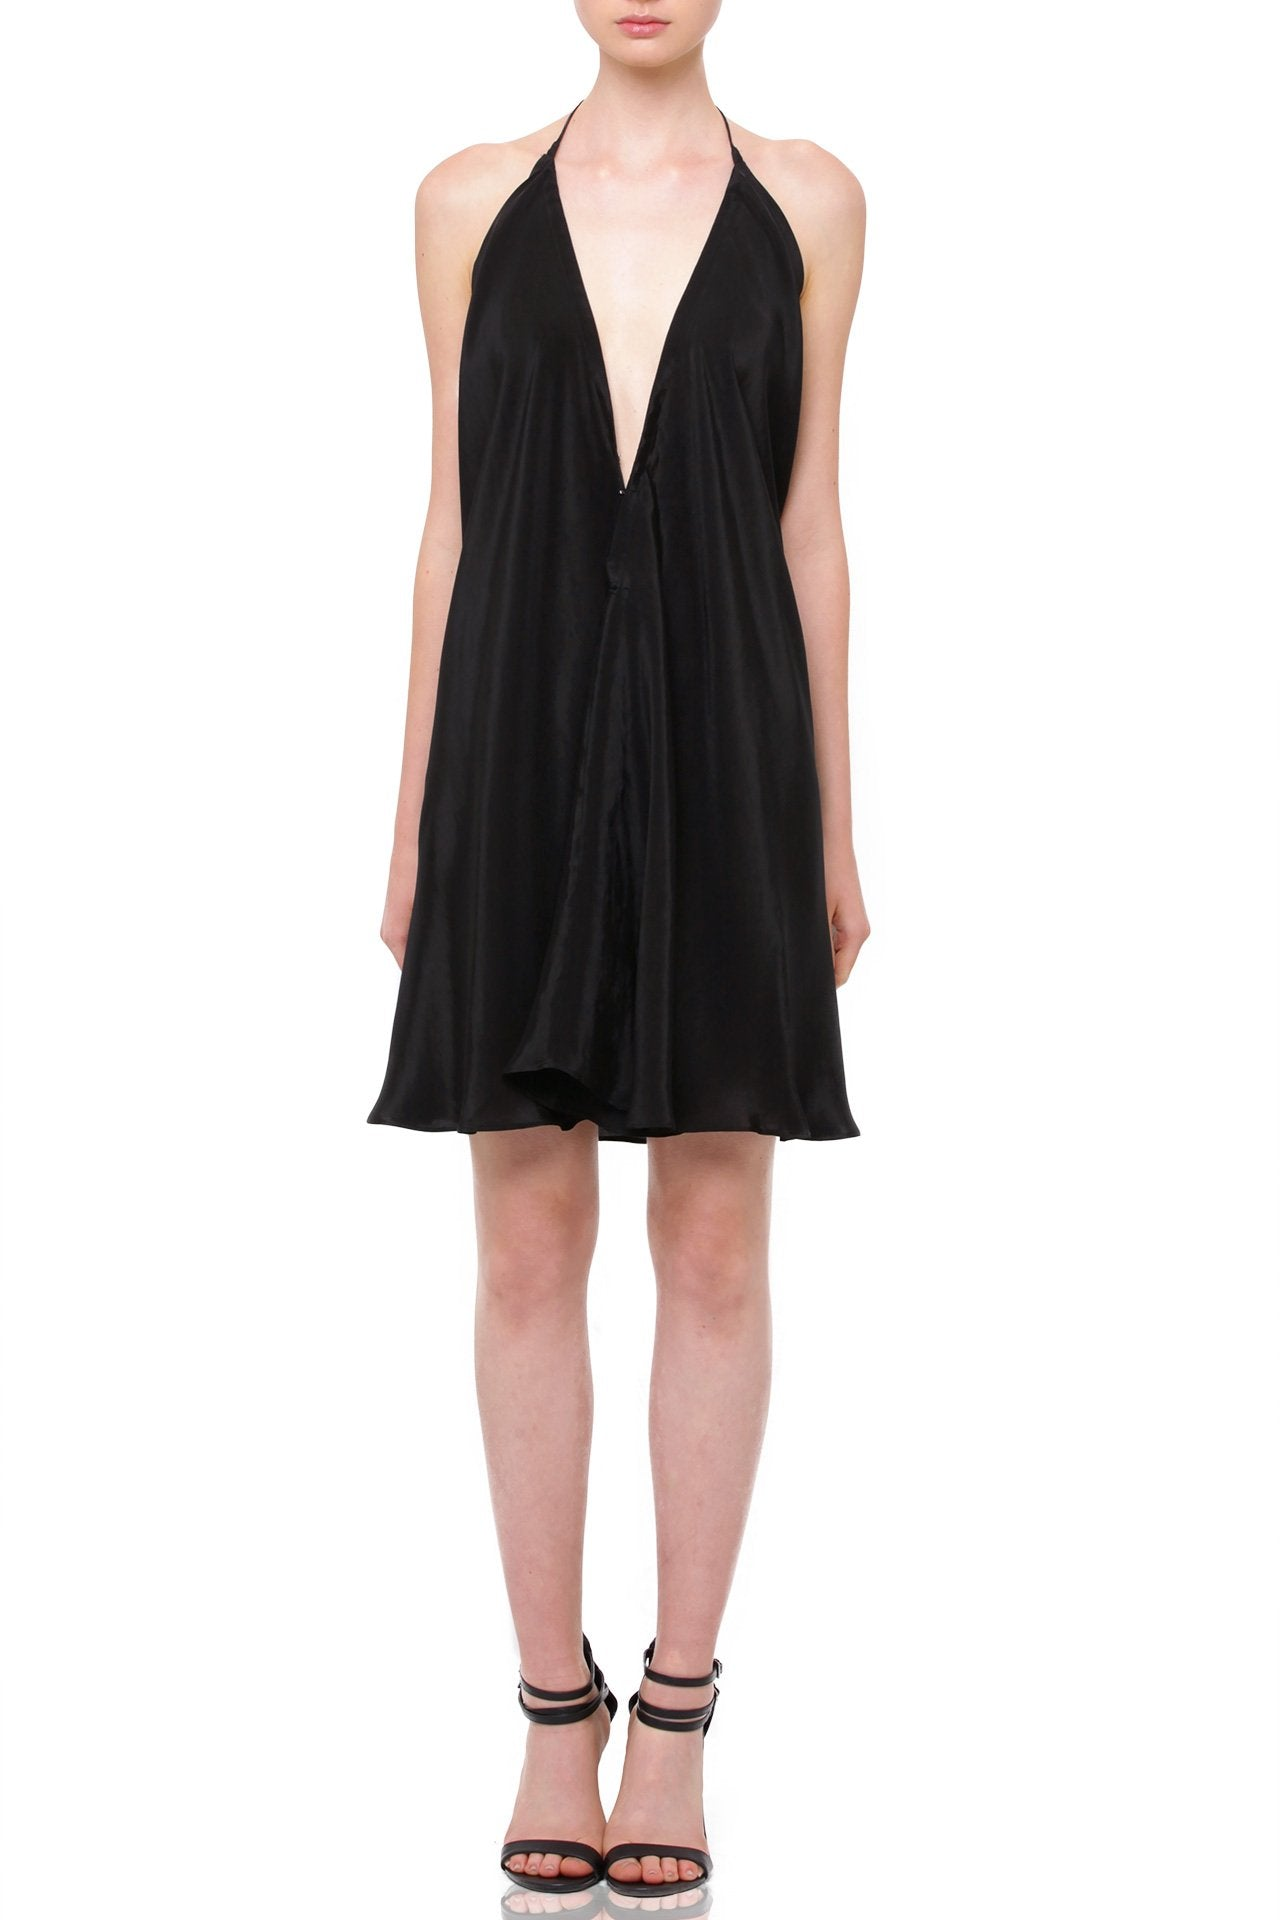 Silk-Multi-Wear-Mini-Dress-In-Black